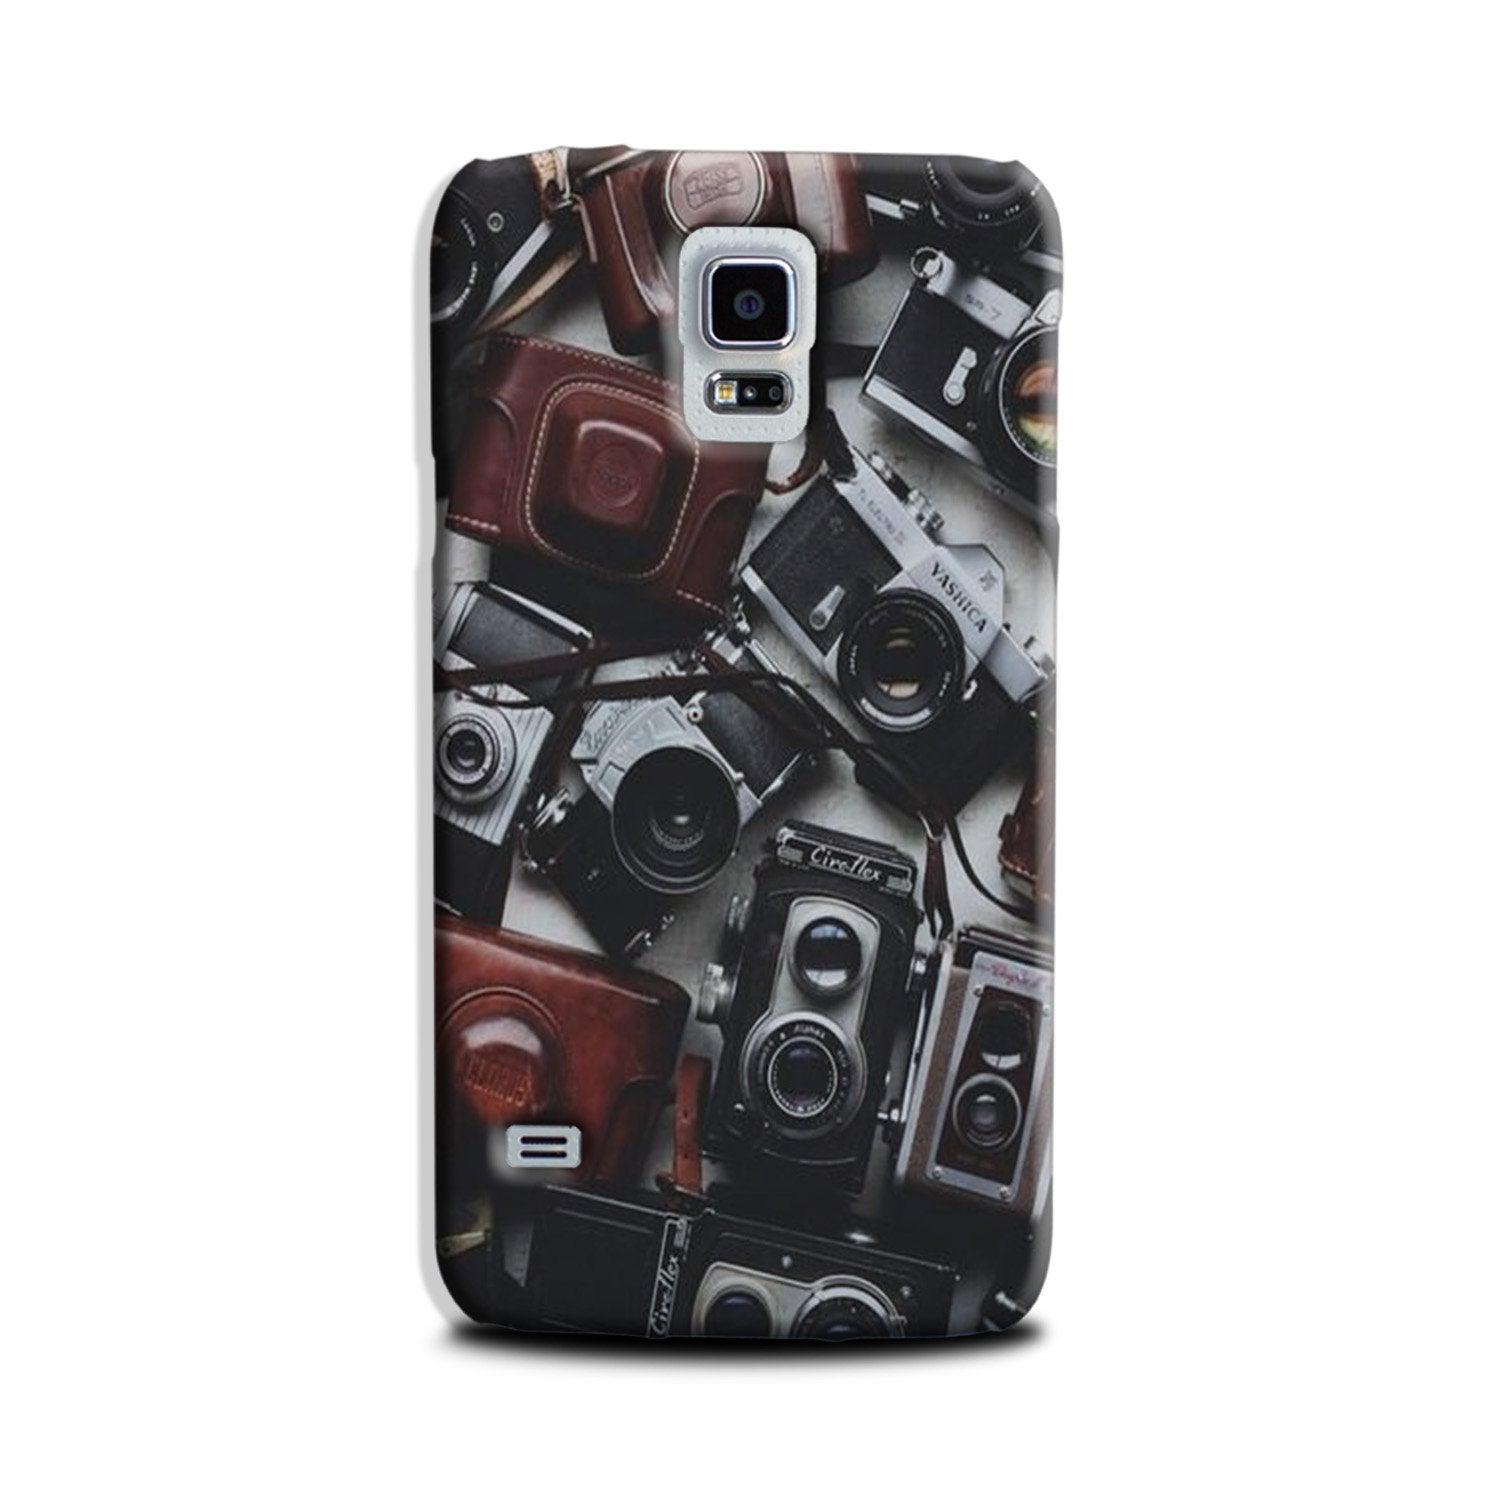 Cameras Case for Galaxy S5